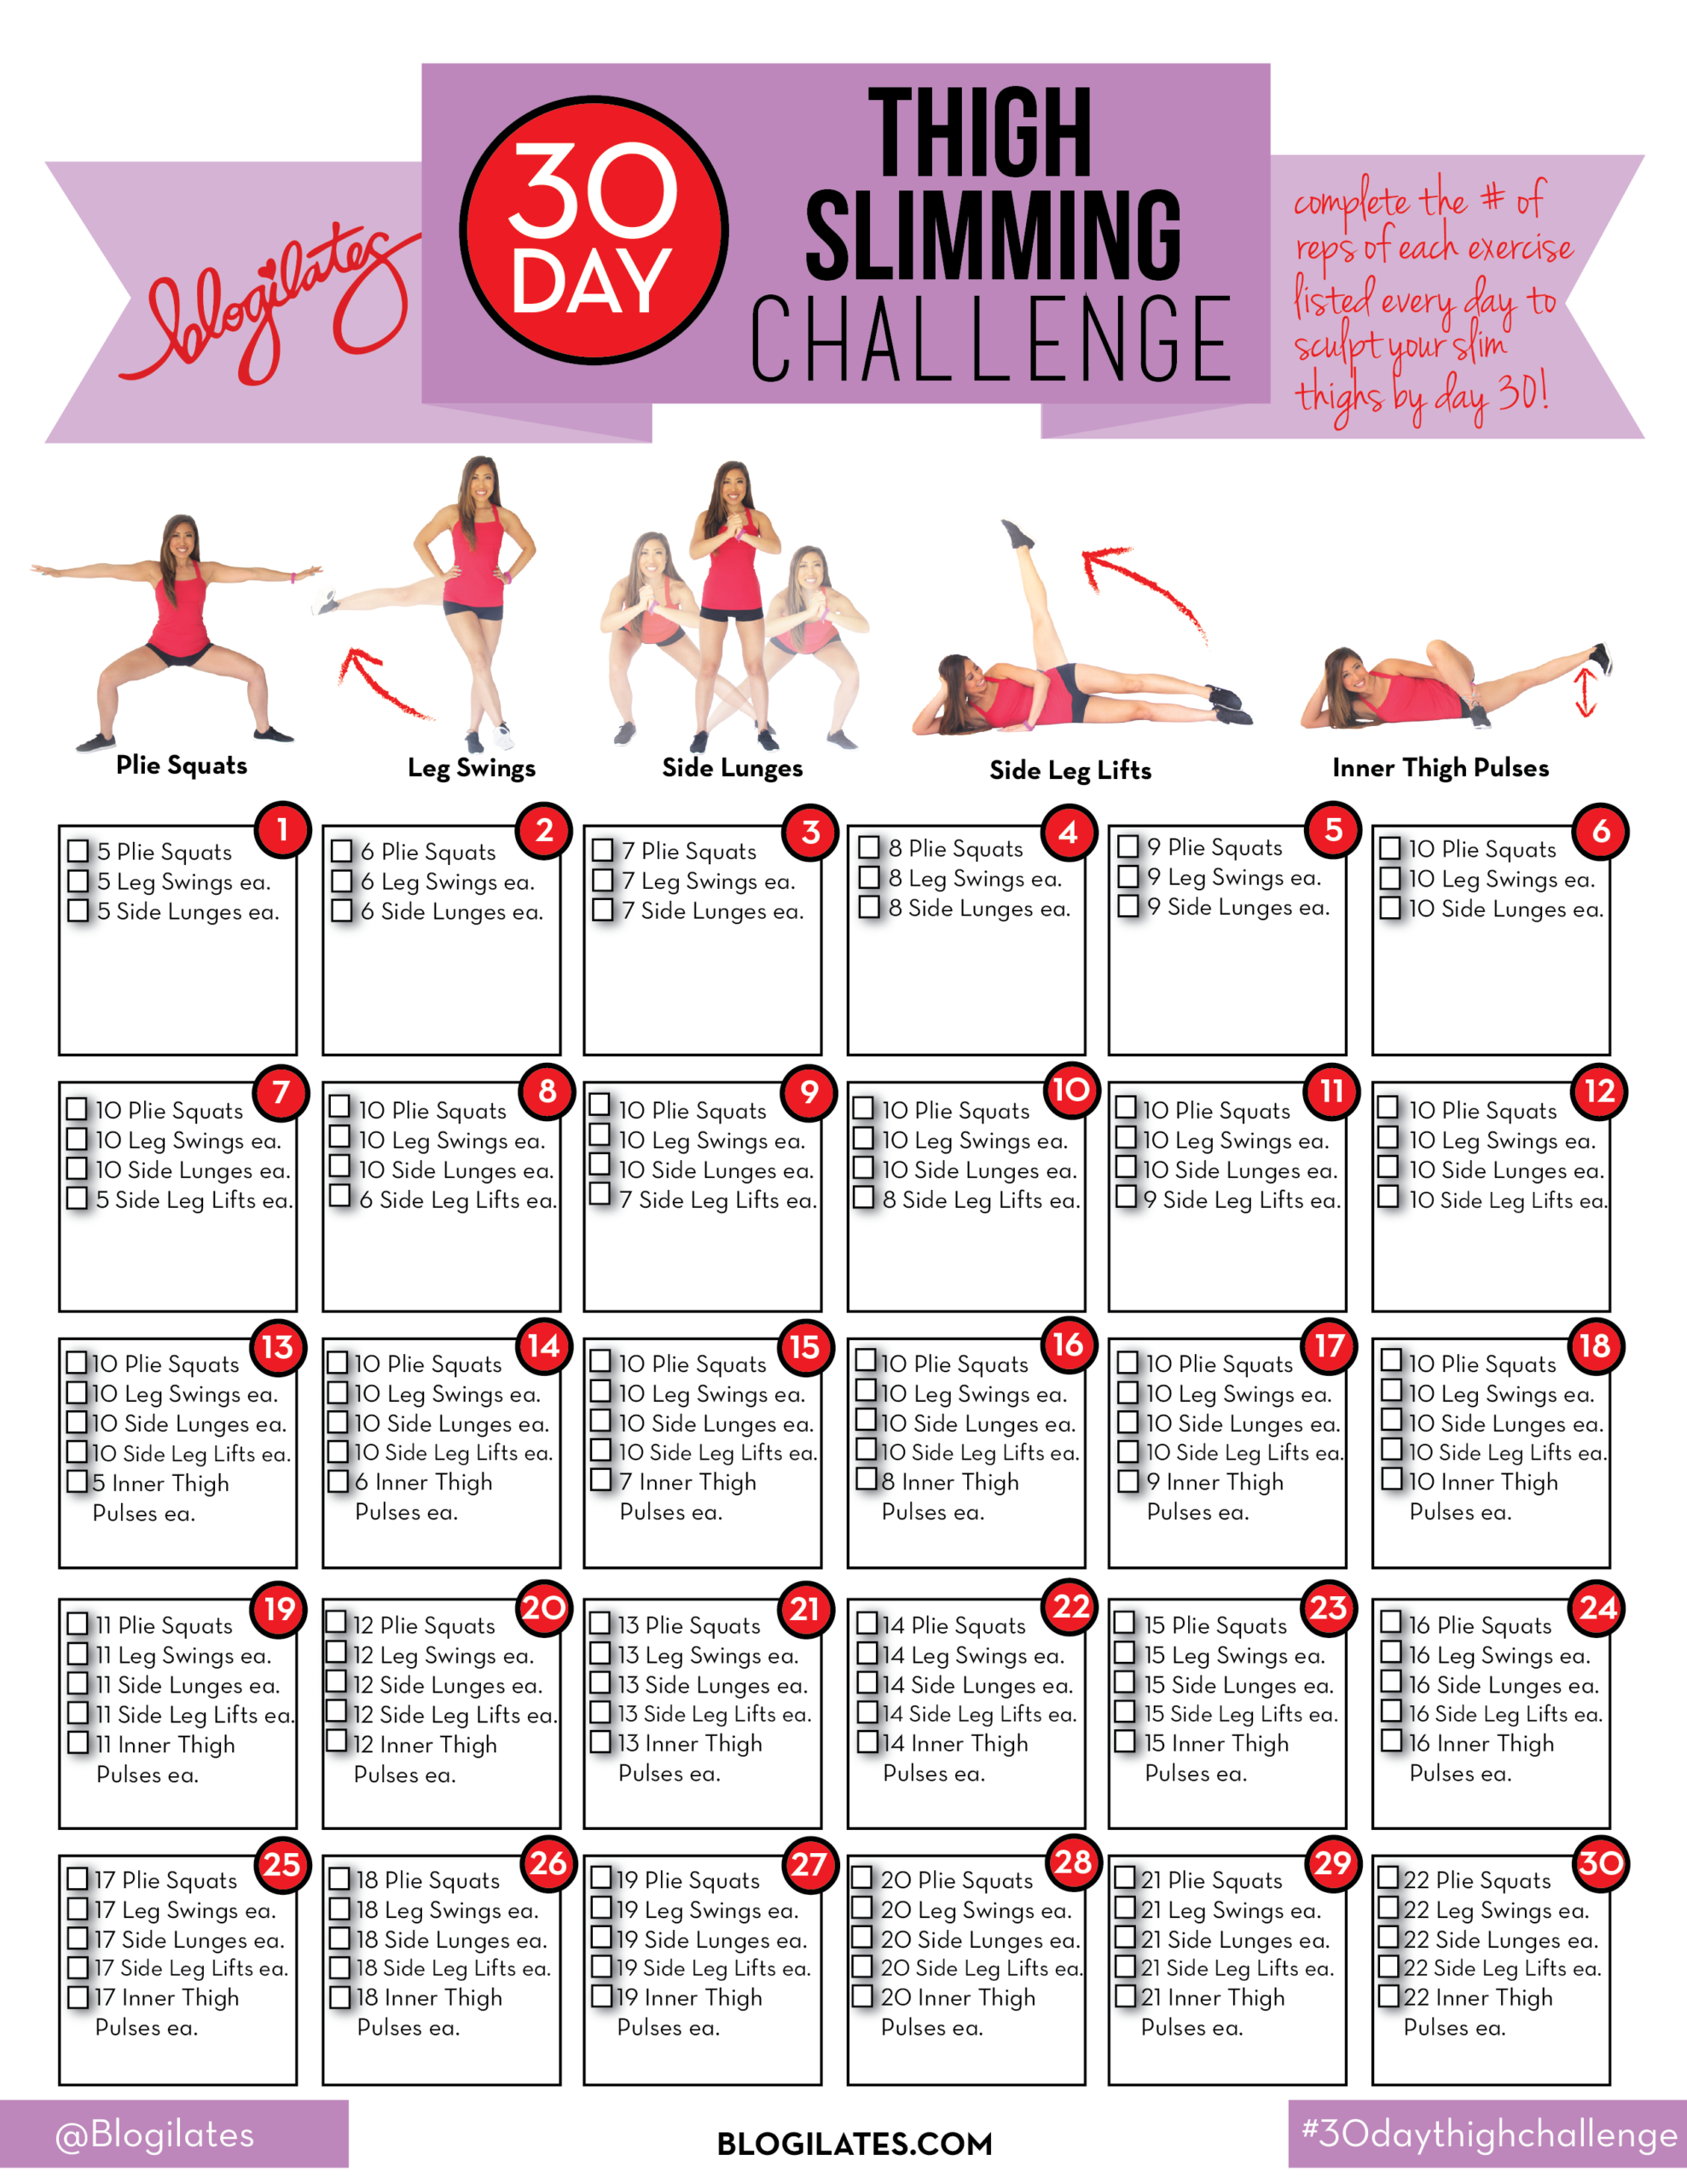 30 Day Thigh Slimming Challenge! pertaining to Blogilates September Calendar